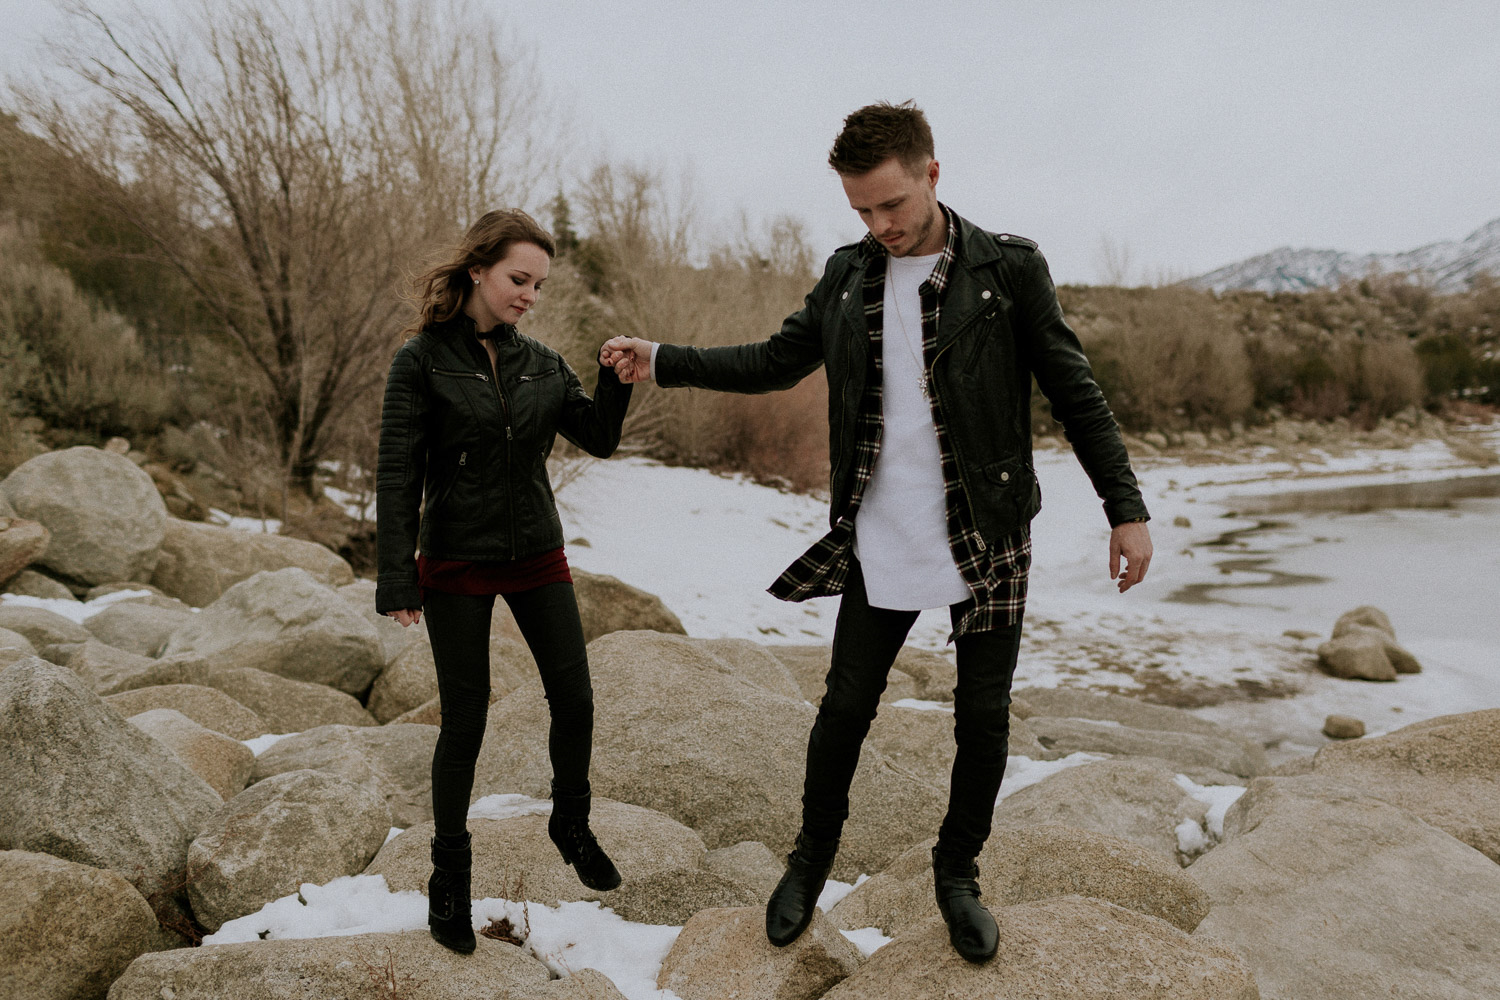 Image of couple hold hands together walking on rocks